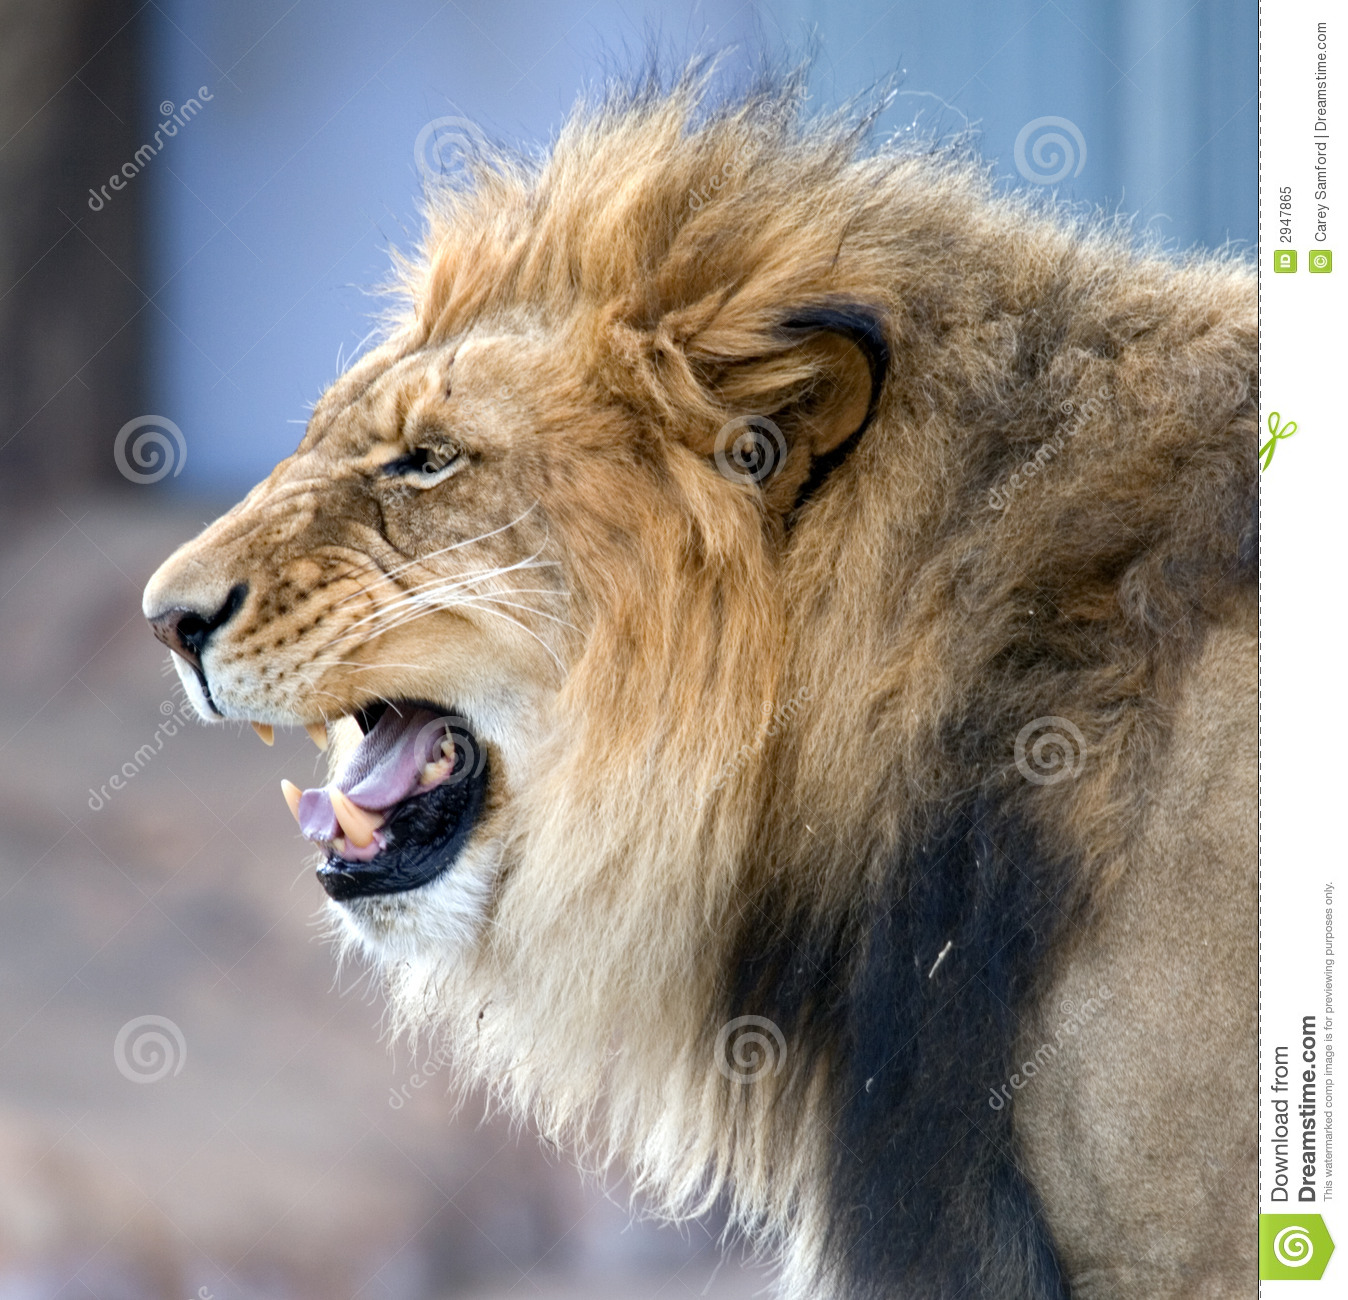 African Roaring Lion Royalty Free Stock Photo - Image: 2947865 Angry Black Wolf Drawing